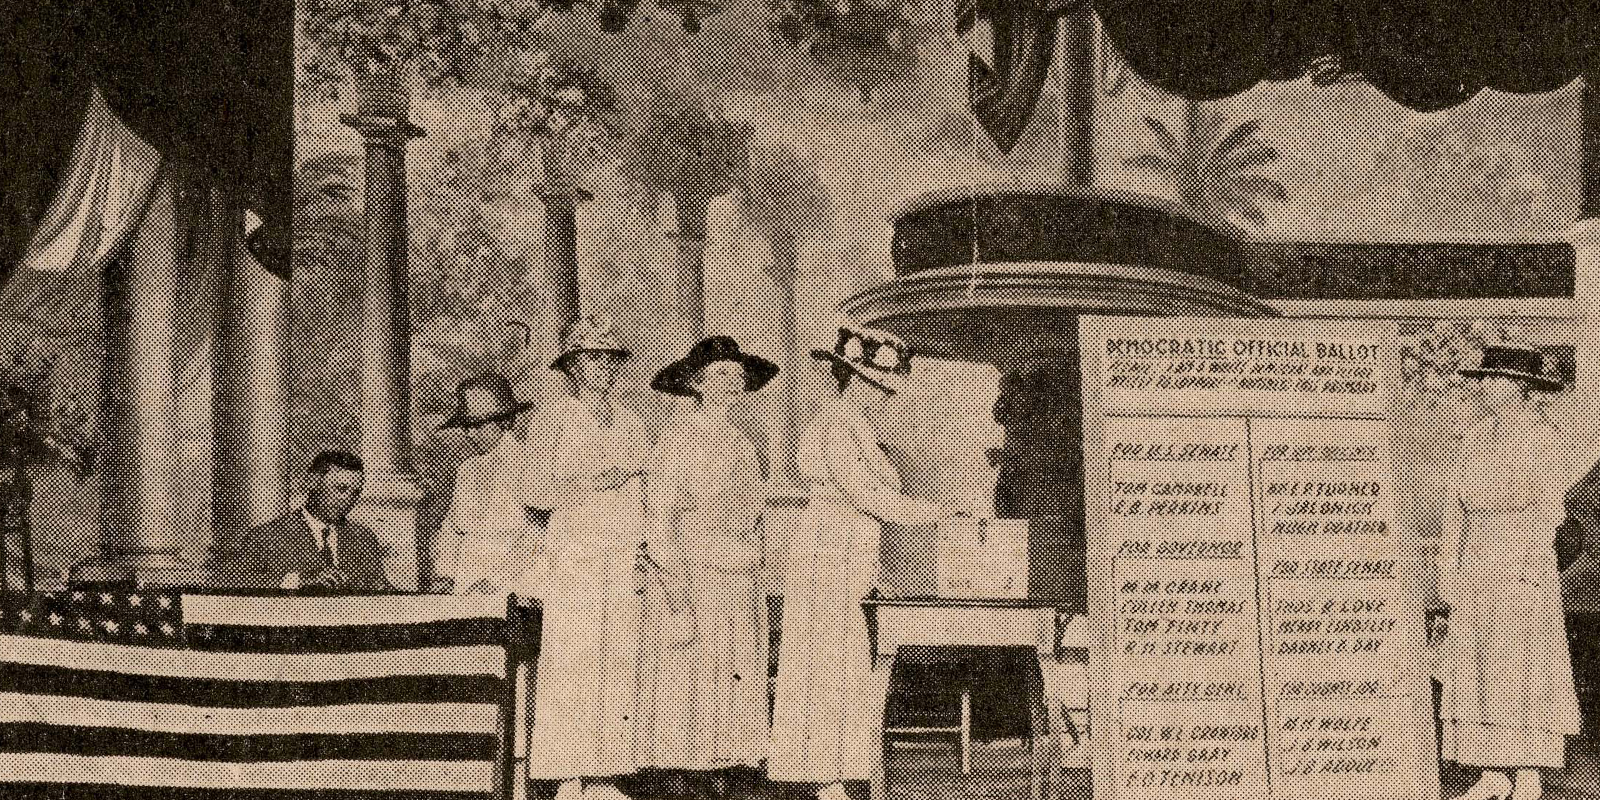 newspaper photo of suffrage era voting of women placing ballots in ballot box